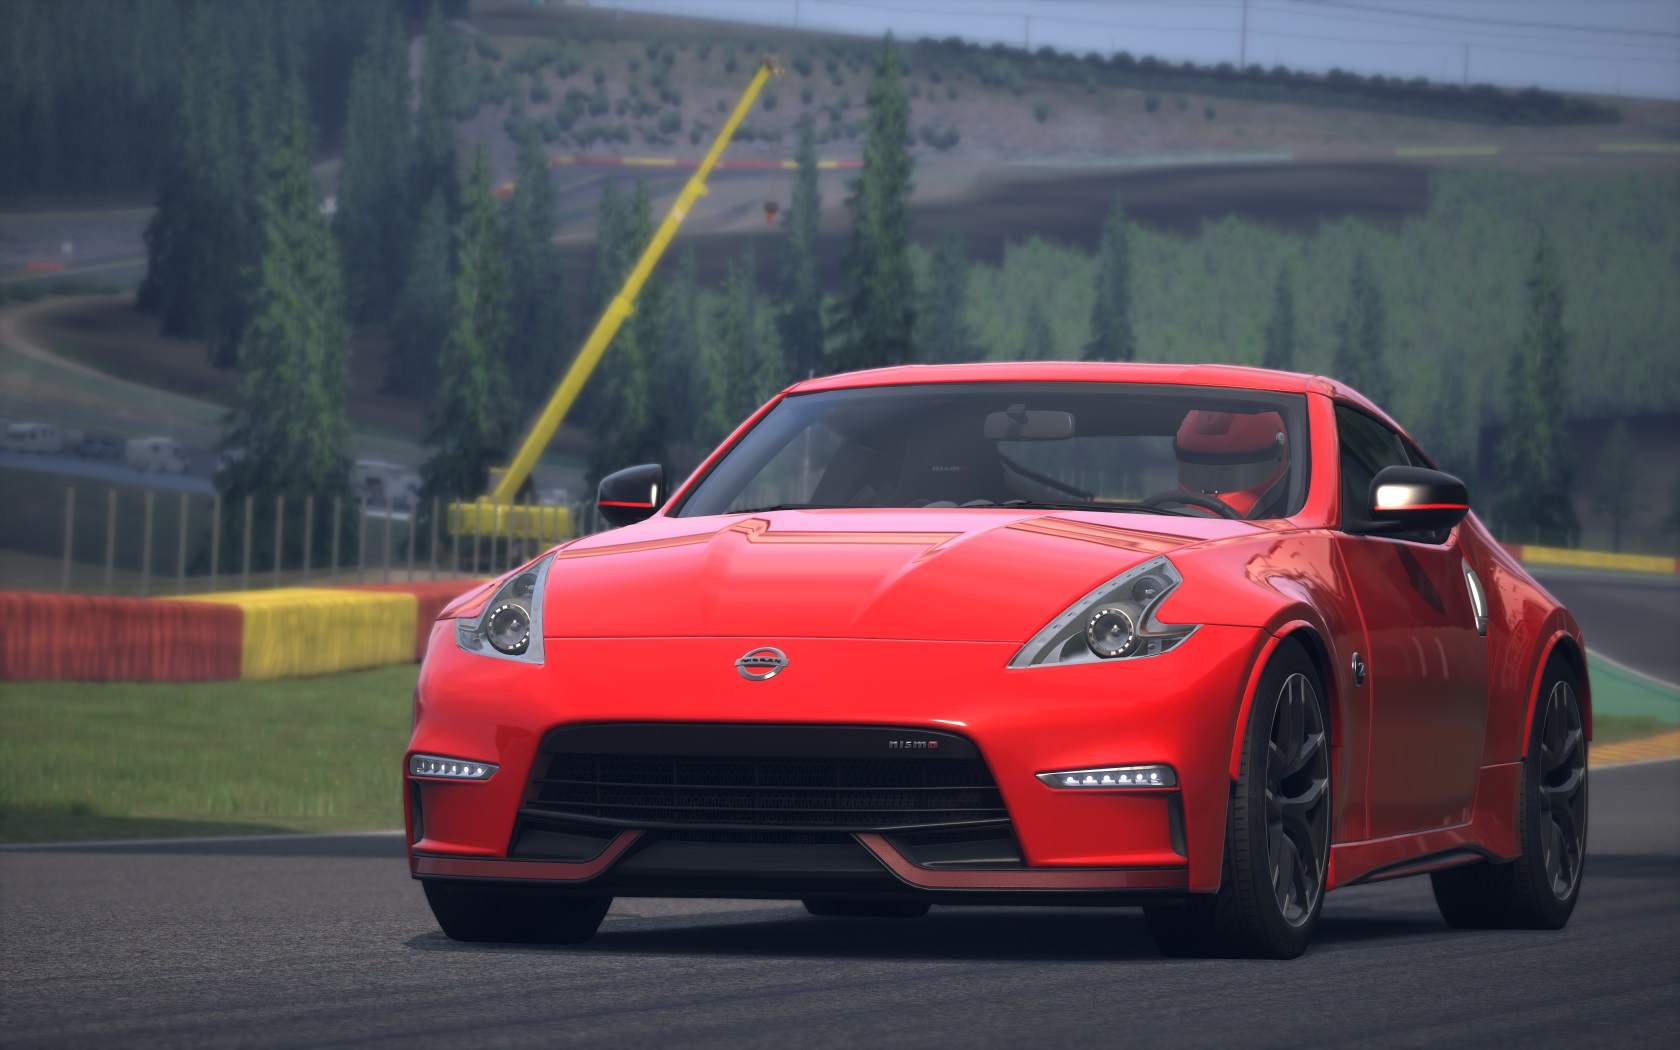 Screenshot_ks_nissan_370z_spa_29-12-118-13-30-5.jpg